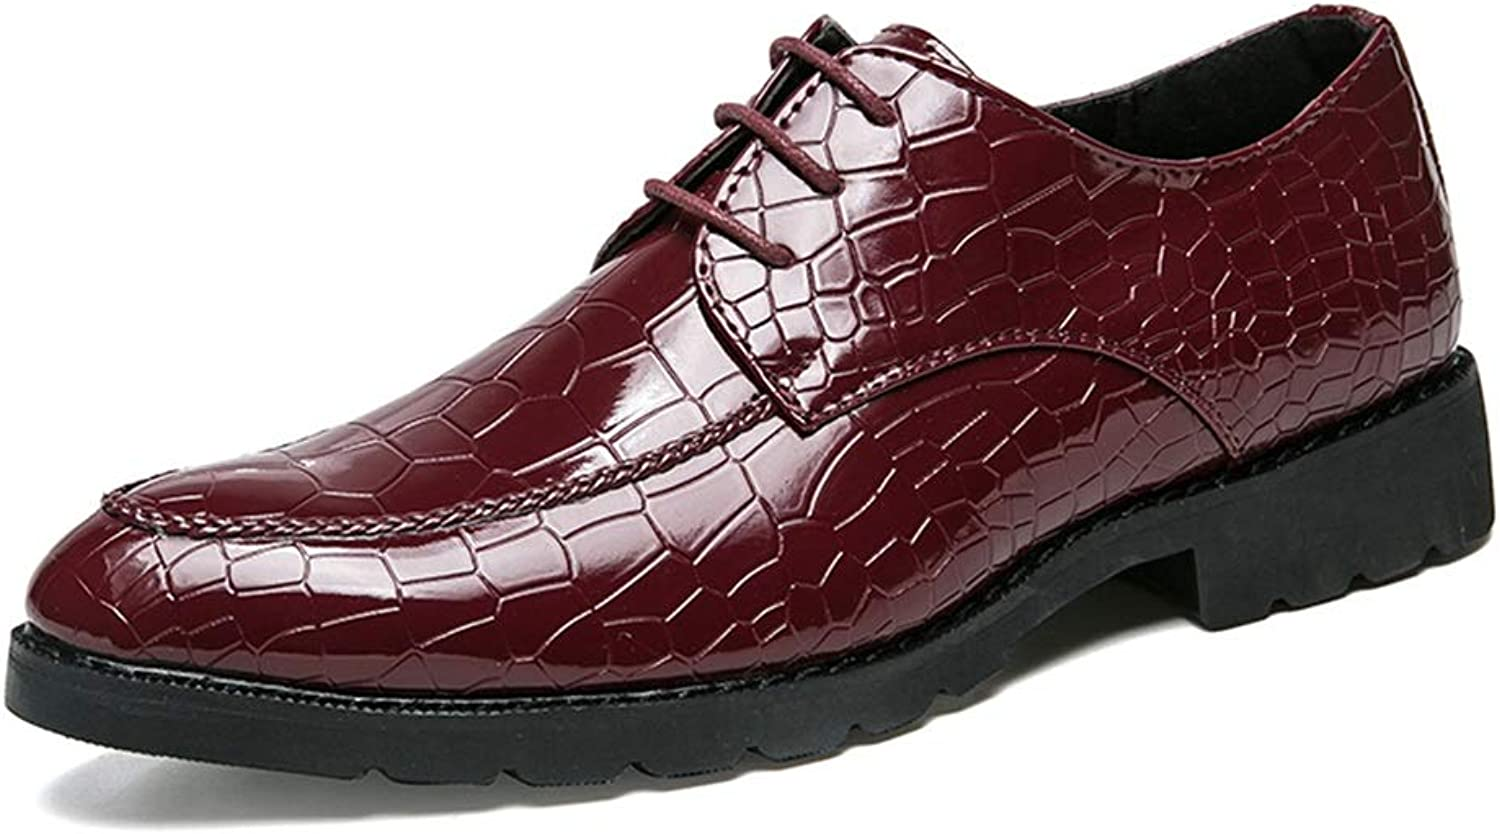 CHENXD shoes, Men's Fashion Pointed Toe Lace-up Oxford Casual Personality Texture Formal shoes